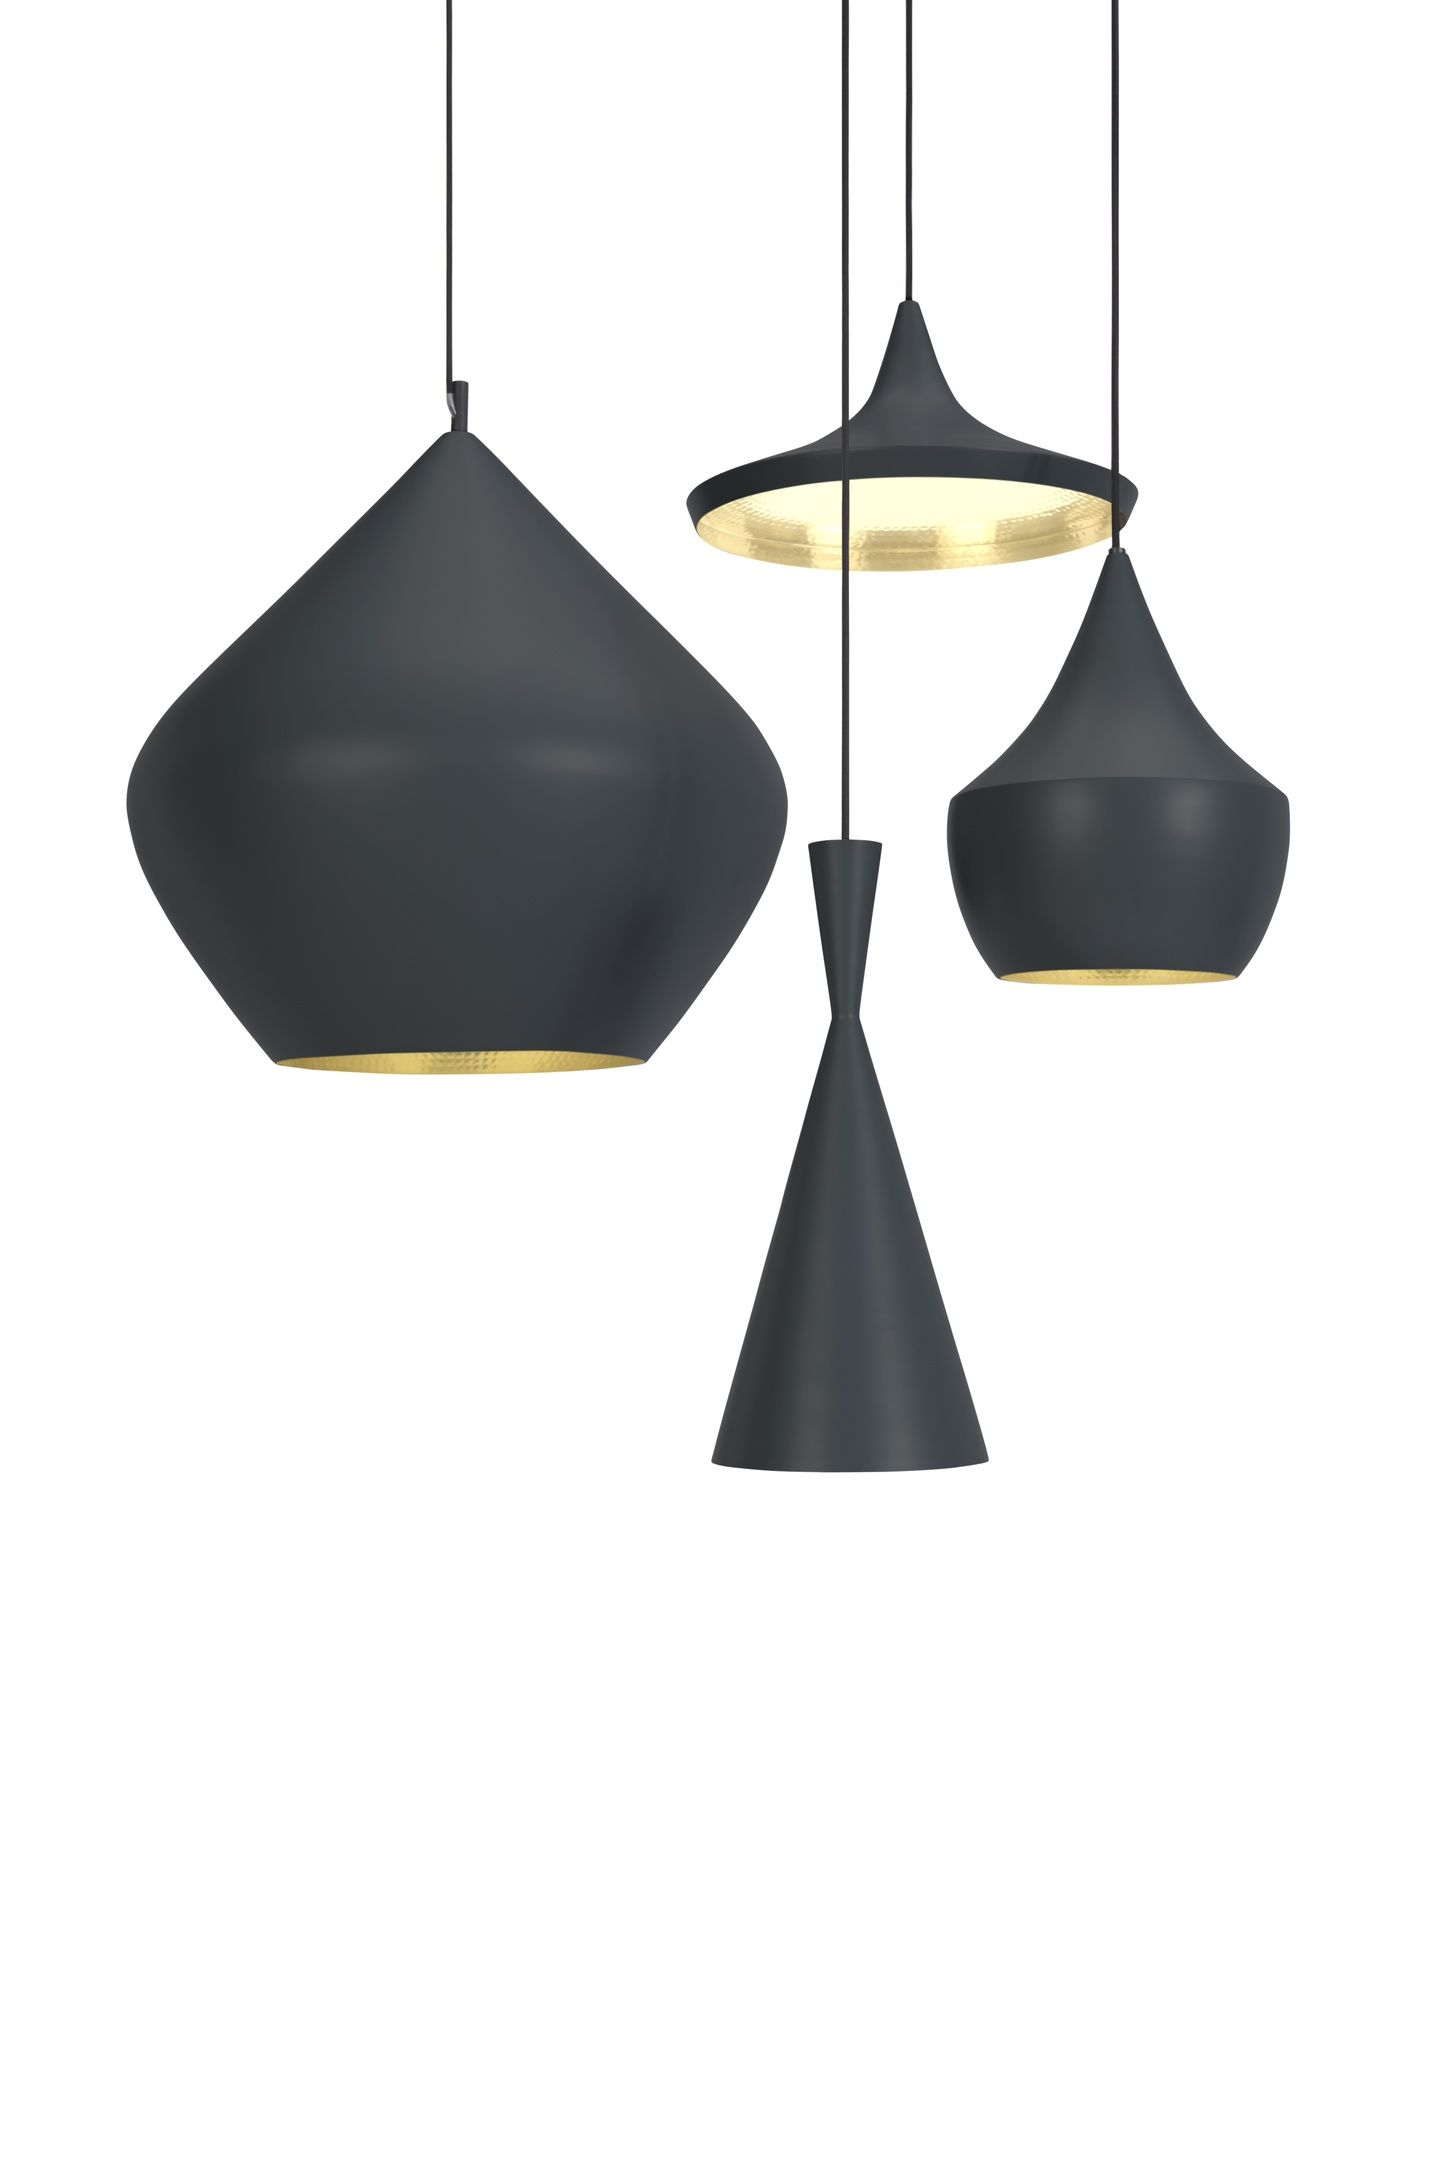 Tom Dixon The Only Place To Browse Full Collection Of Products Ranging From Our Famous Pendant Lights And Furniture Some